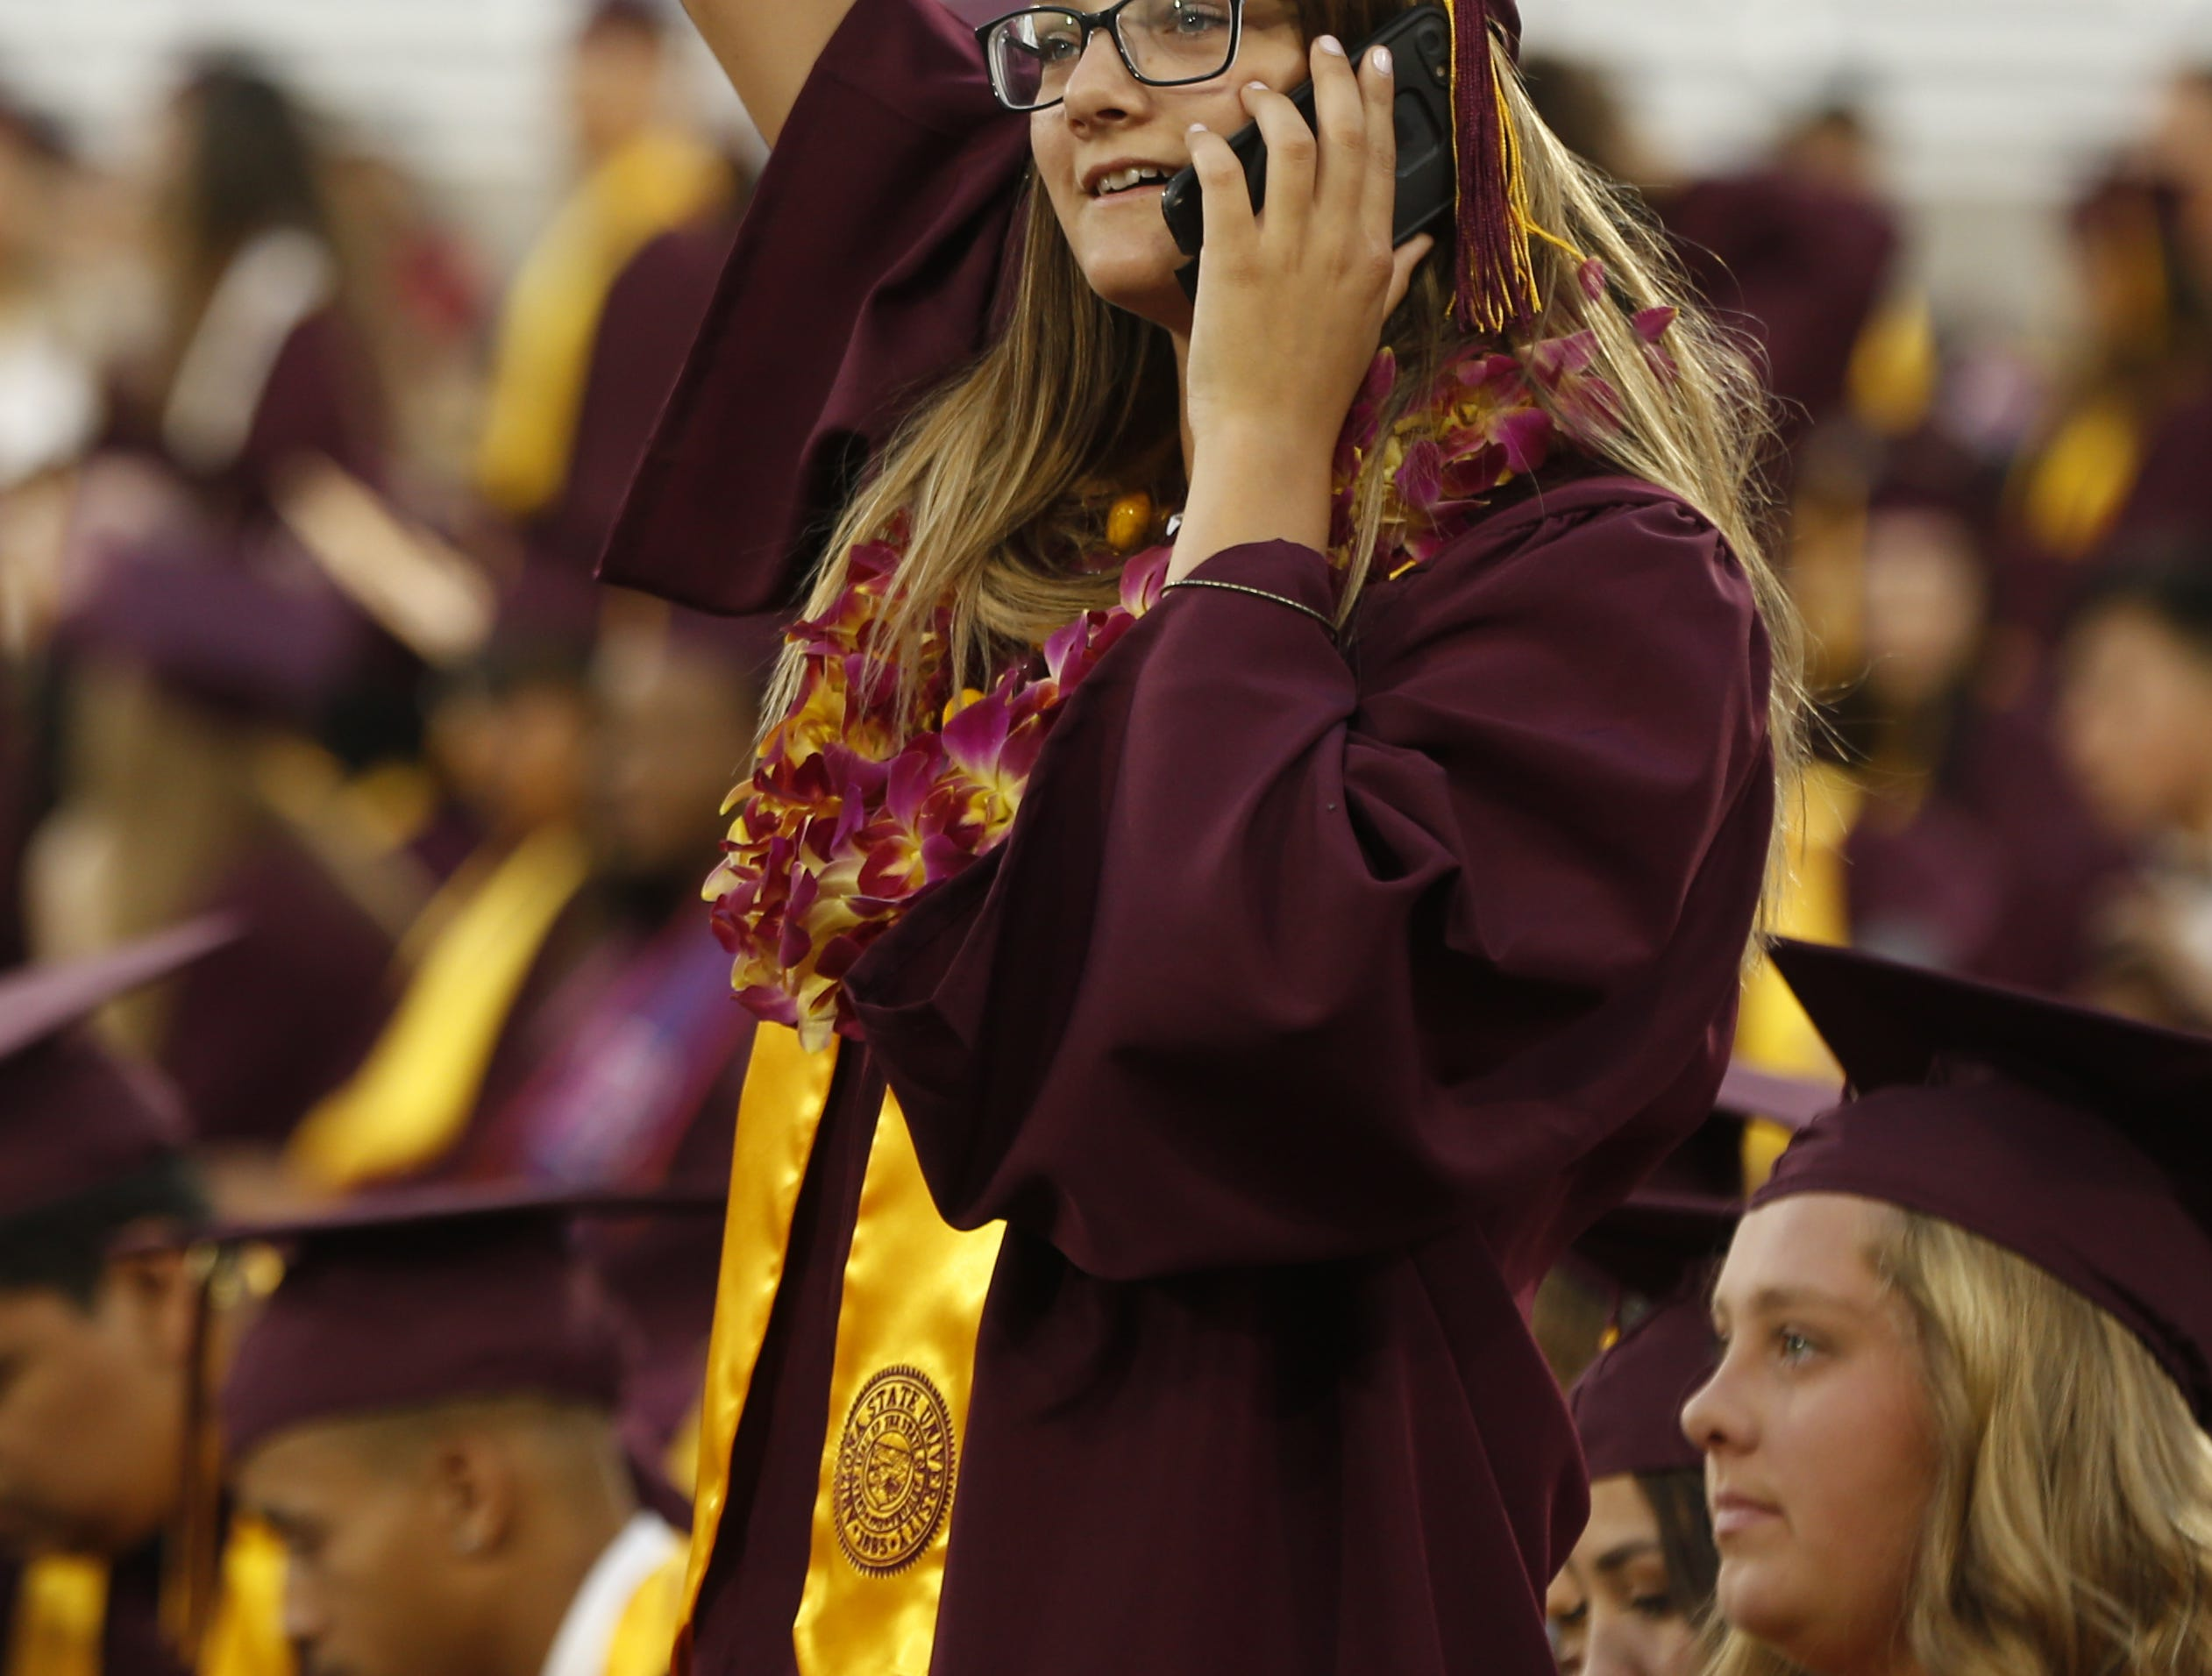 ASU graduates arrive and look for seats before ASU's Undergraduate Commencement at Sun Devil Stadium in Tempe, Ariz. on May 6, 2019.